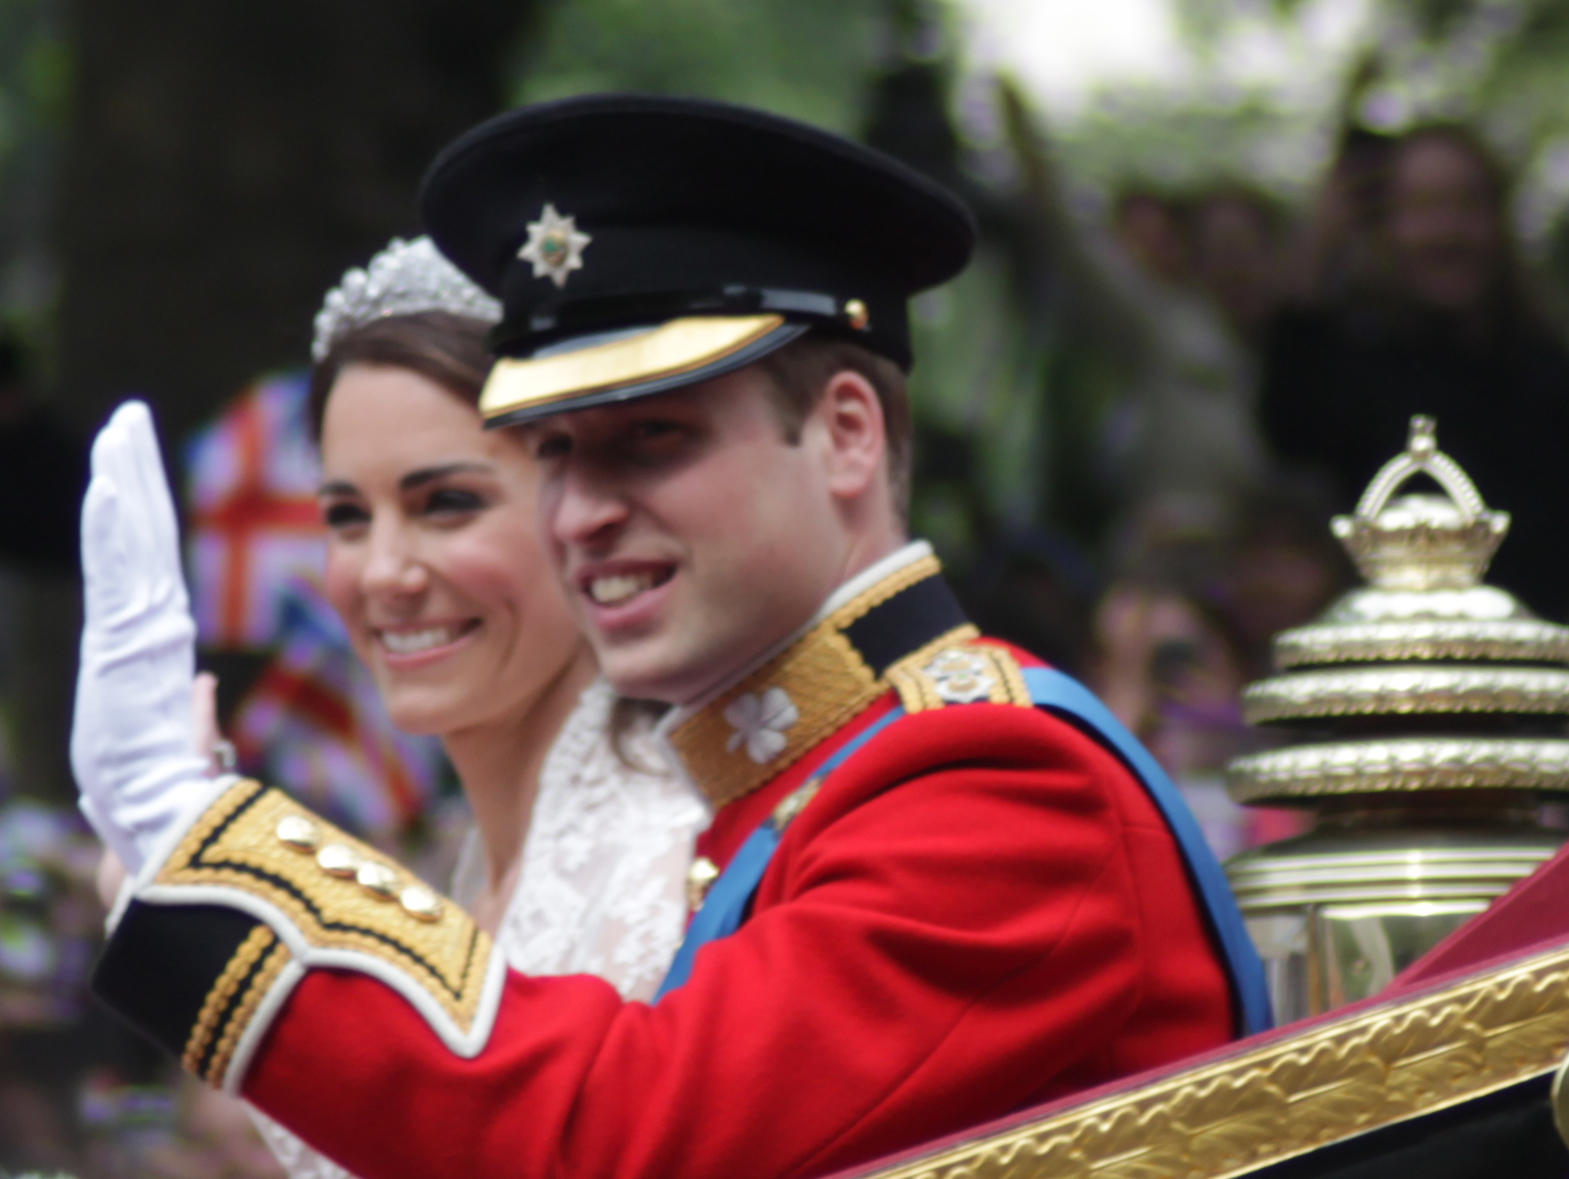 All_smiles_Wedding_of_Prince_William_of_Wales_and_Kate_Middleton.jpg (1569×1179)